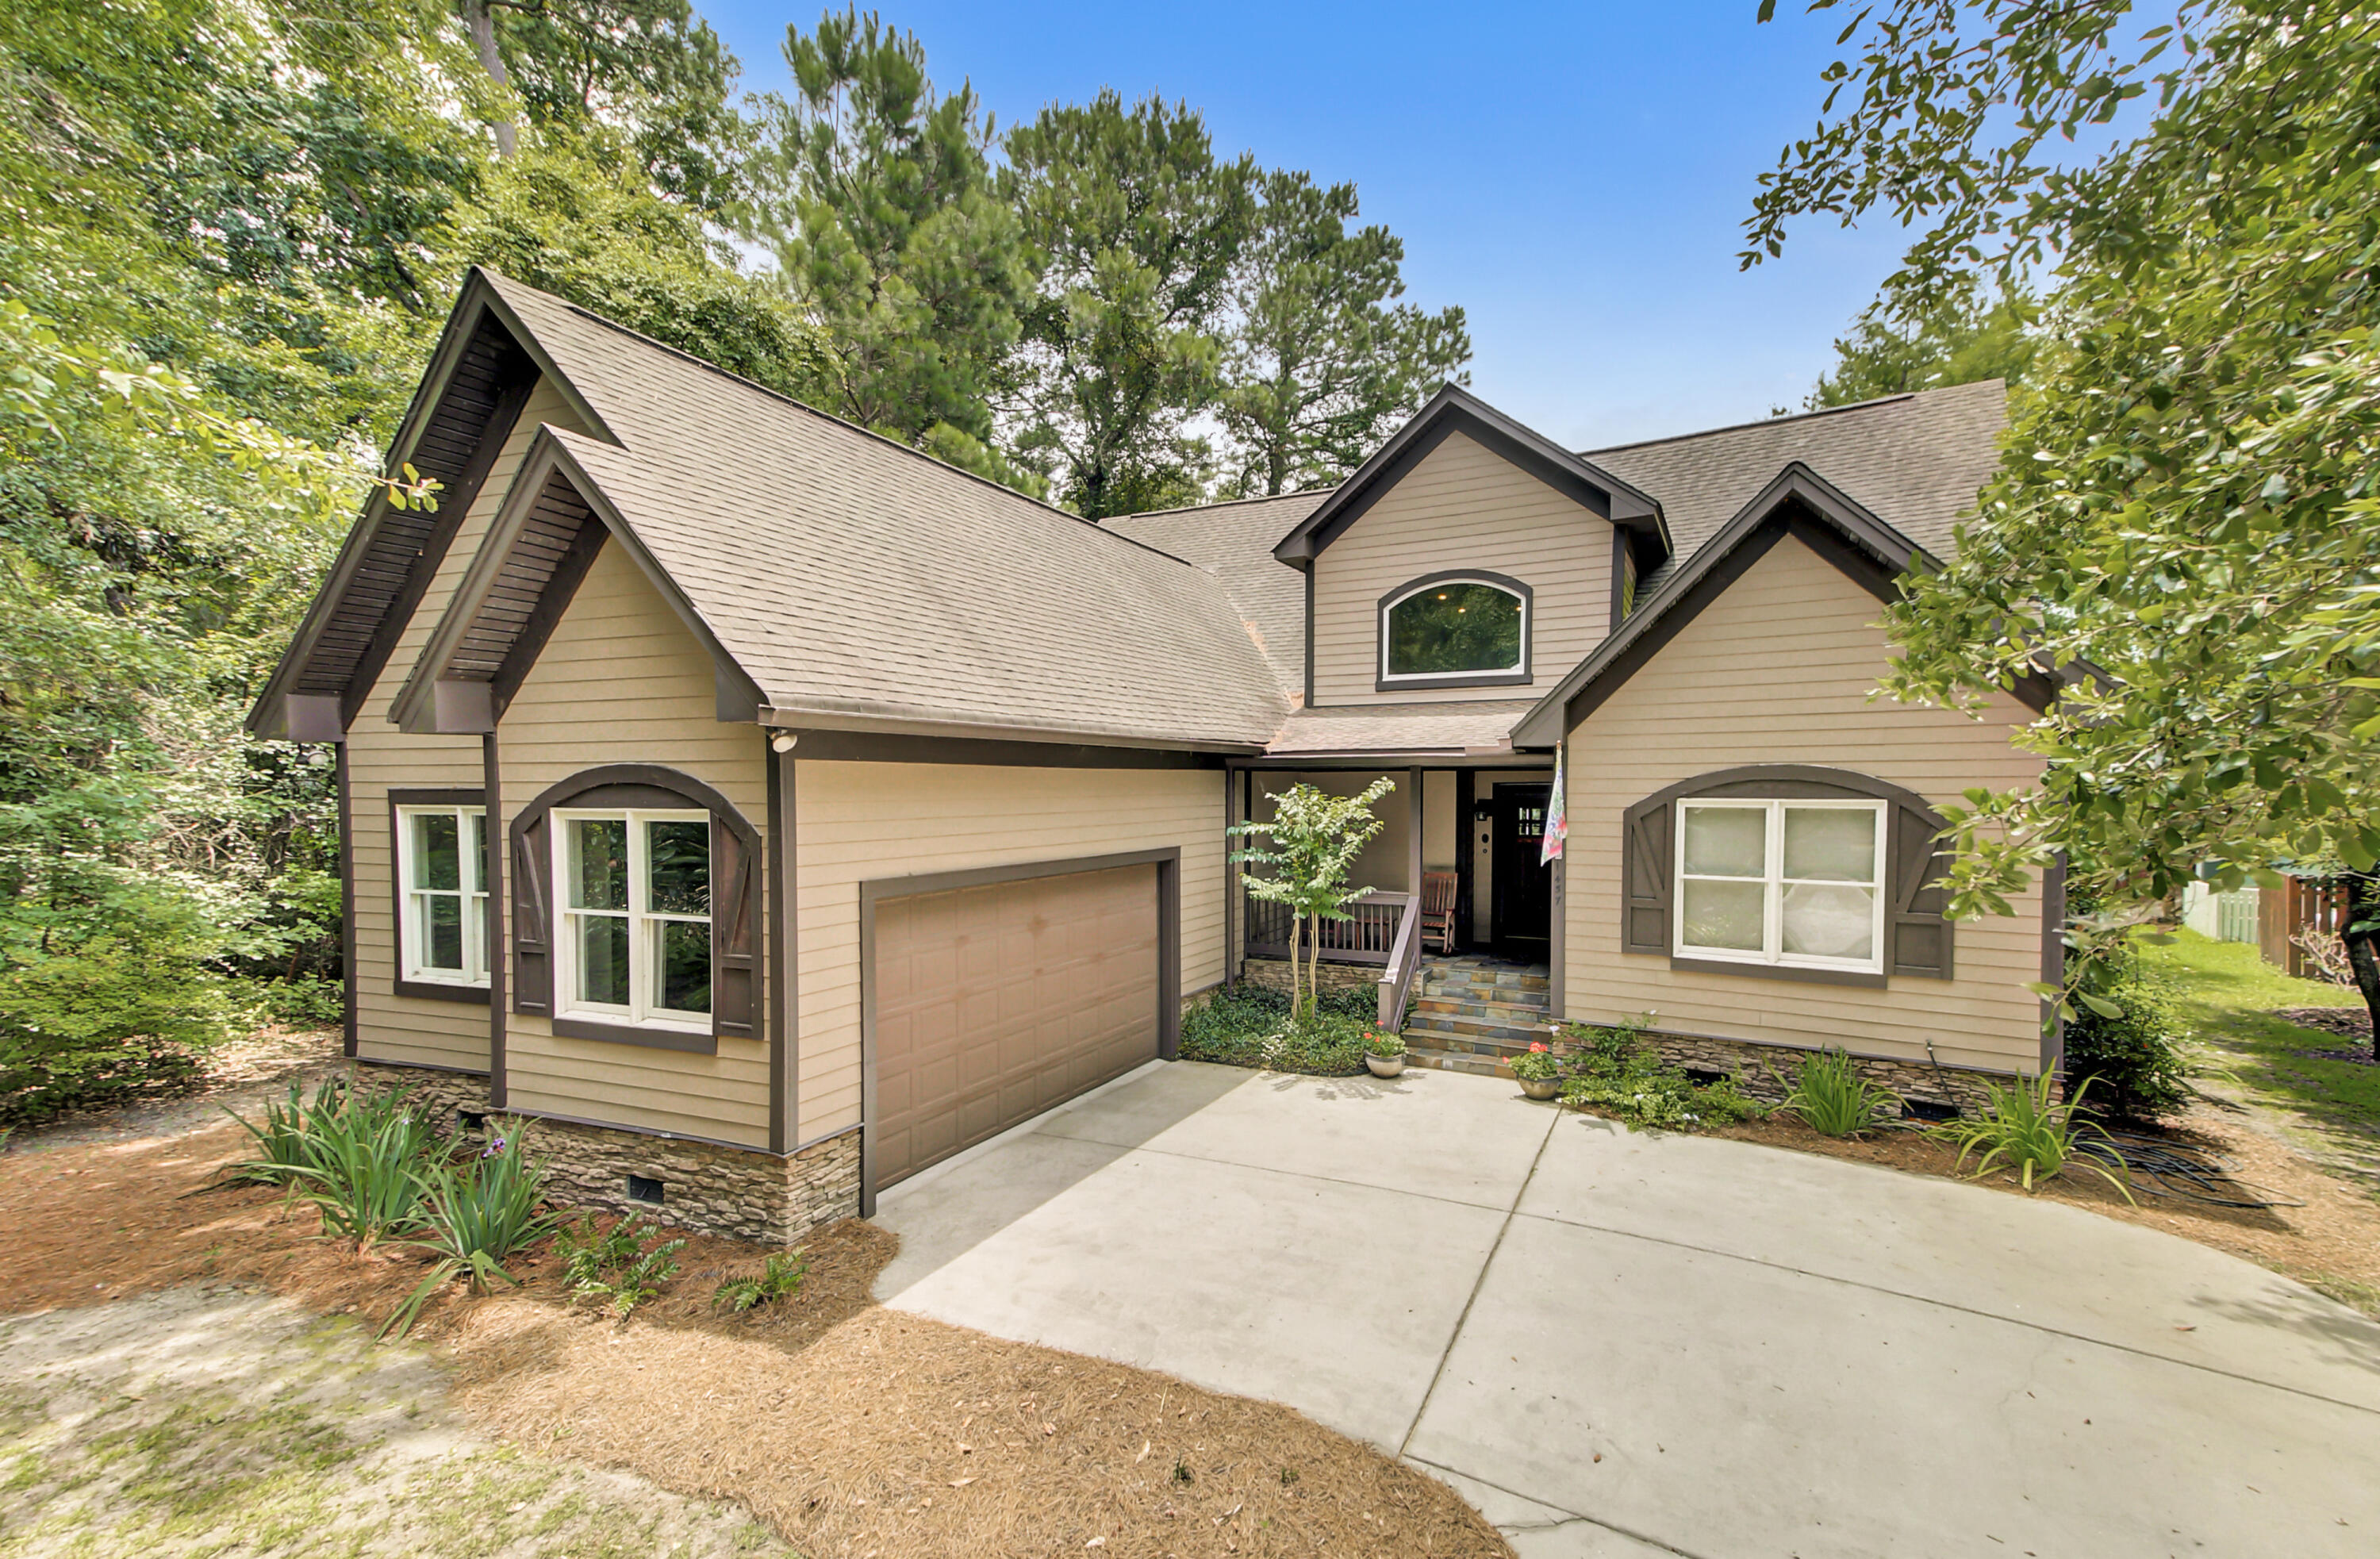 Shell Point Homes For Sale - 1457 Appling, Mount Pleasant, SC - 25